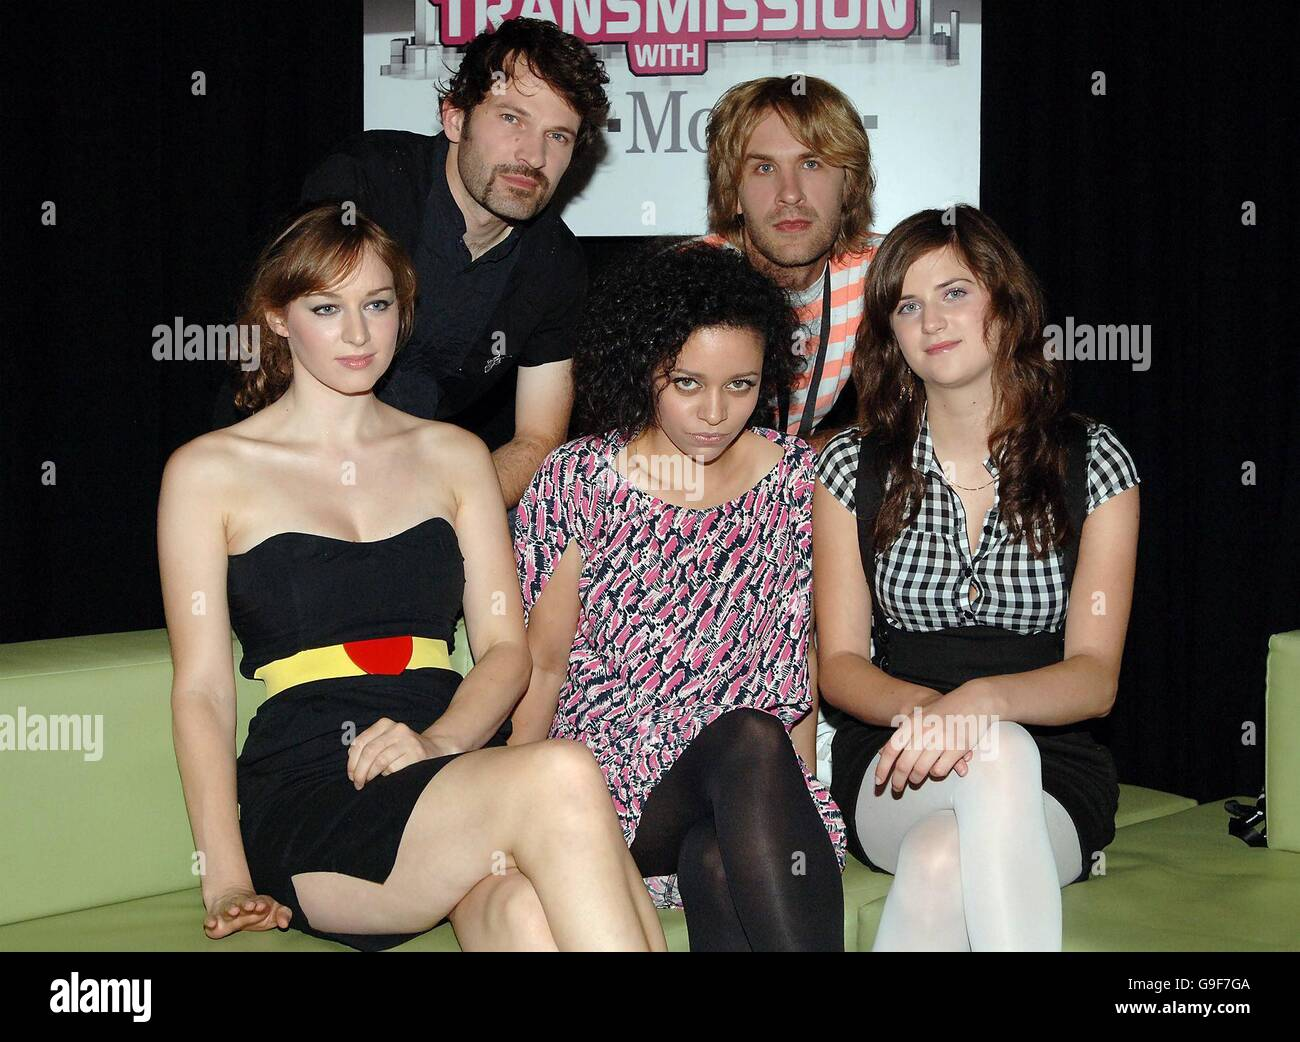 New Young Pony Club before performing at the Transmission with Stock